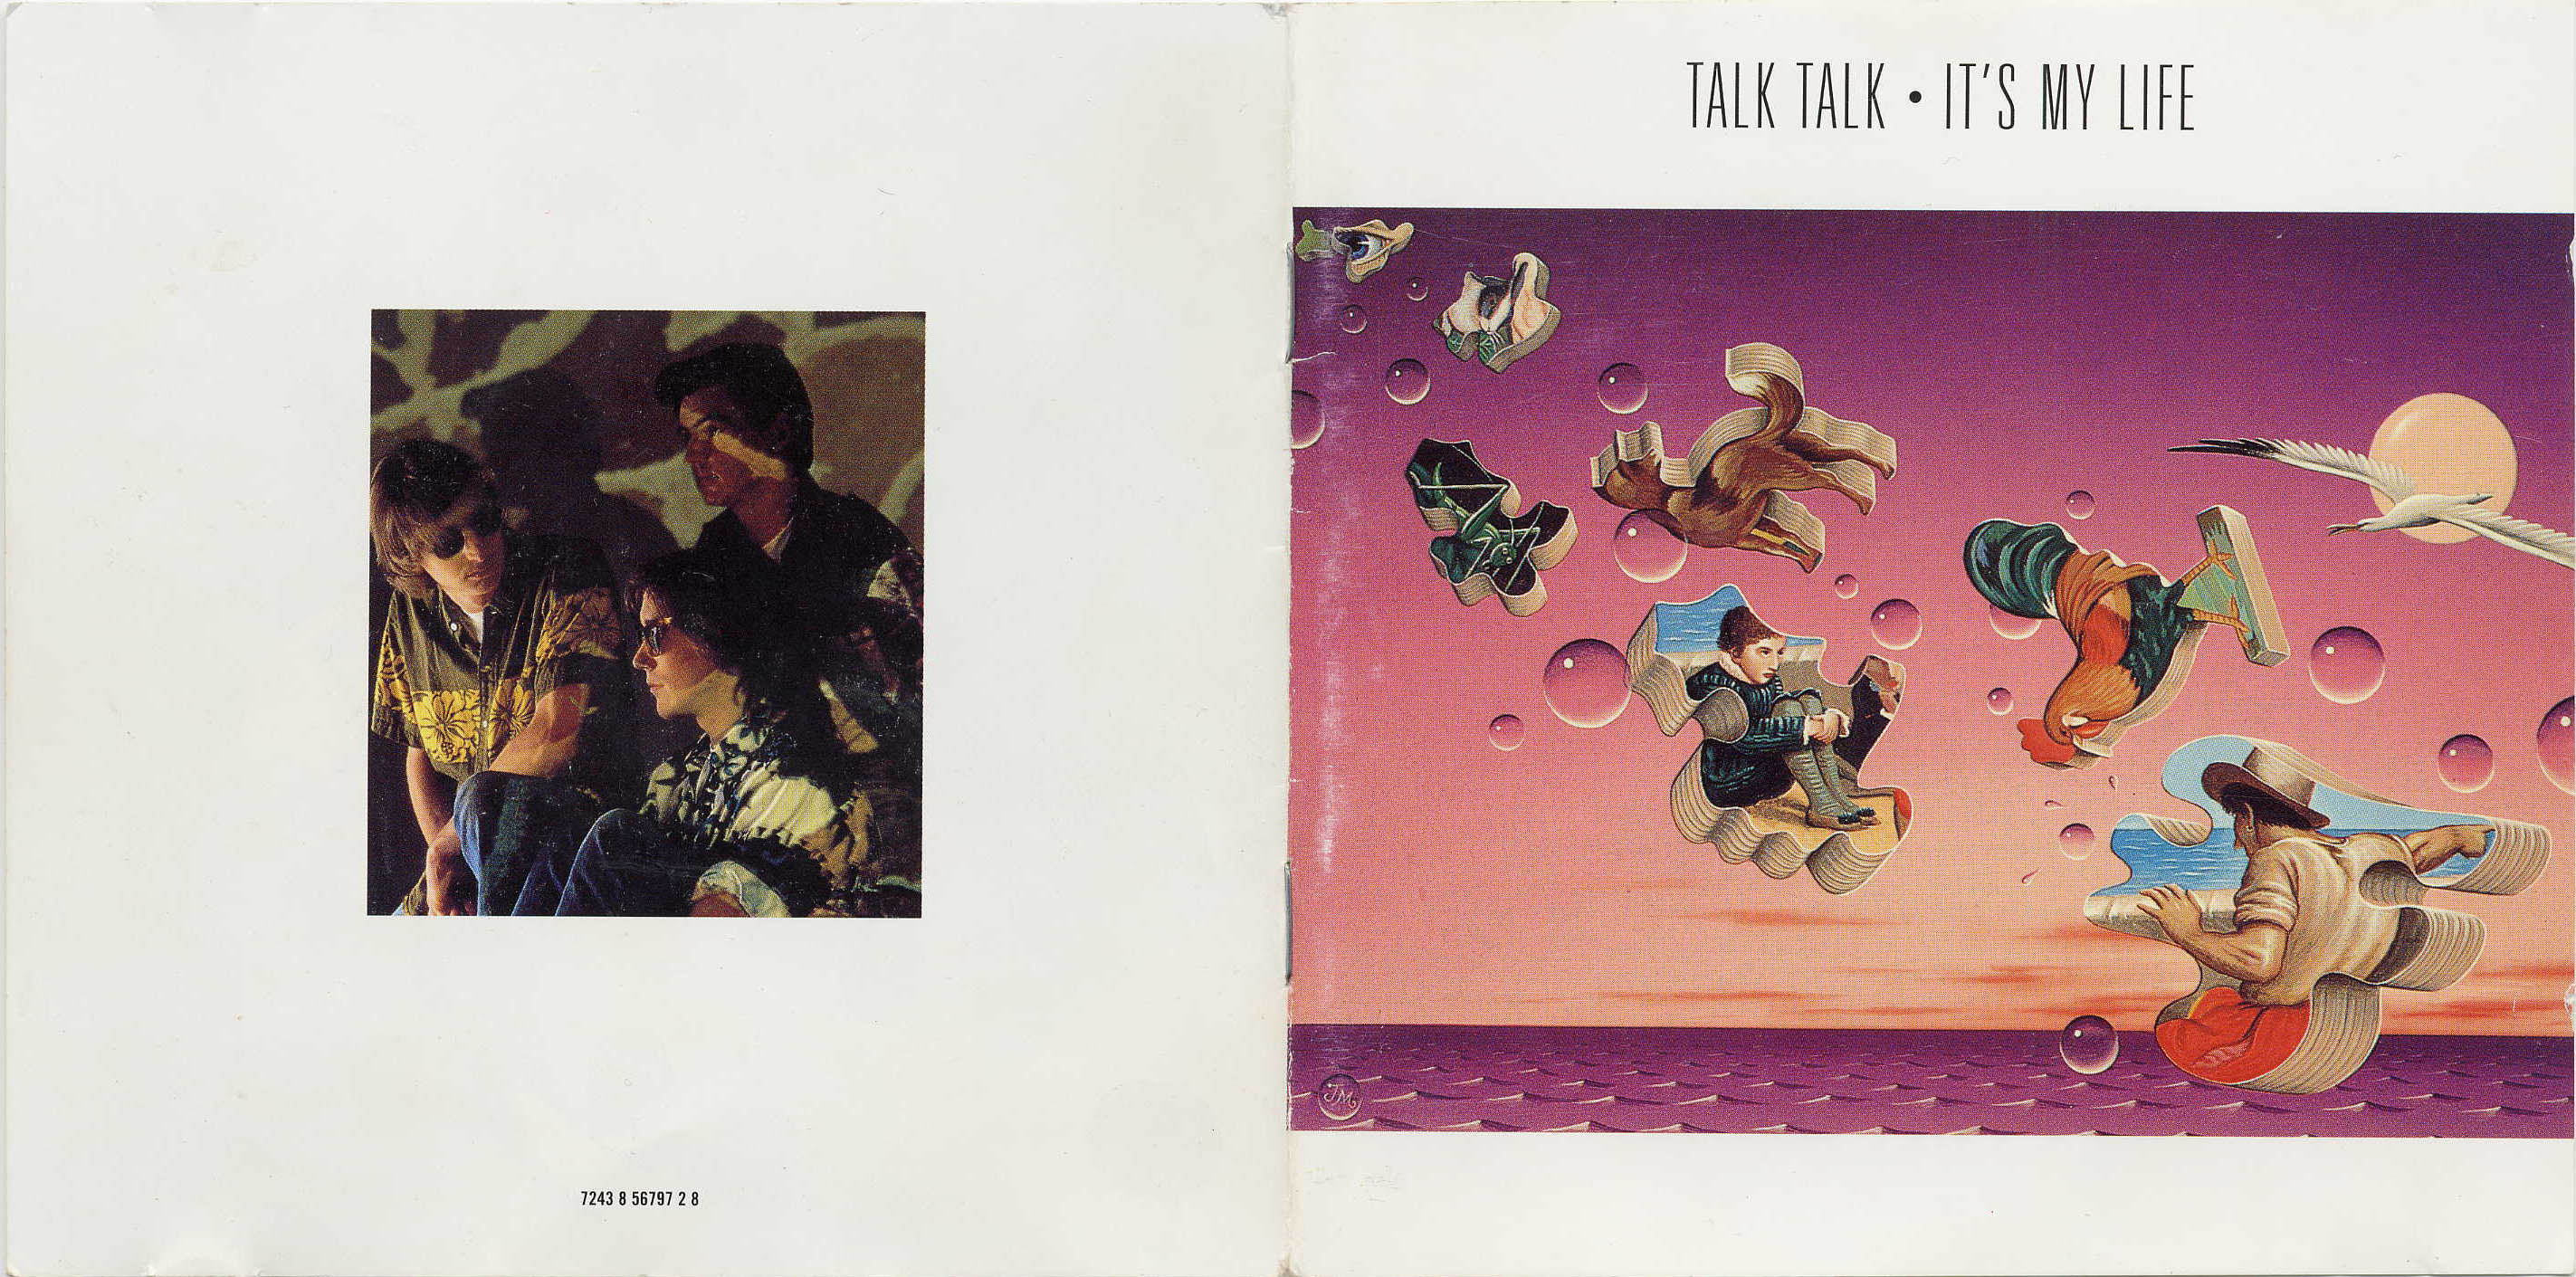 Talk Talk - It's my life booklet 1